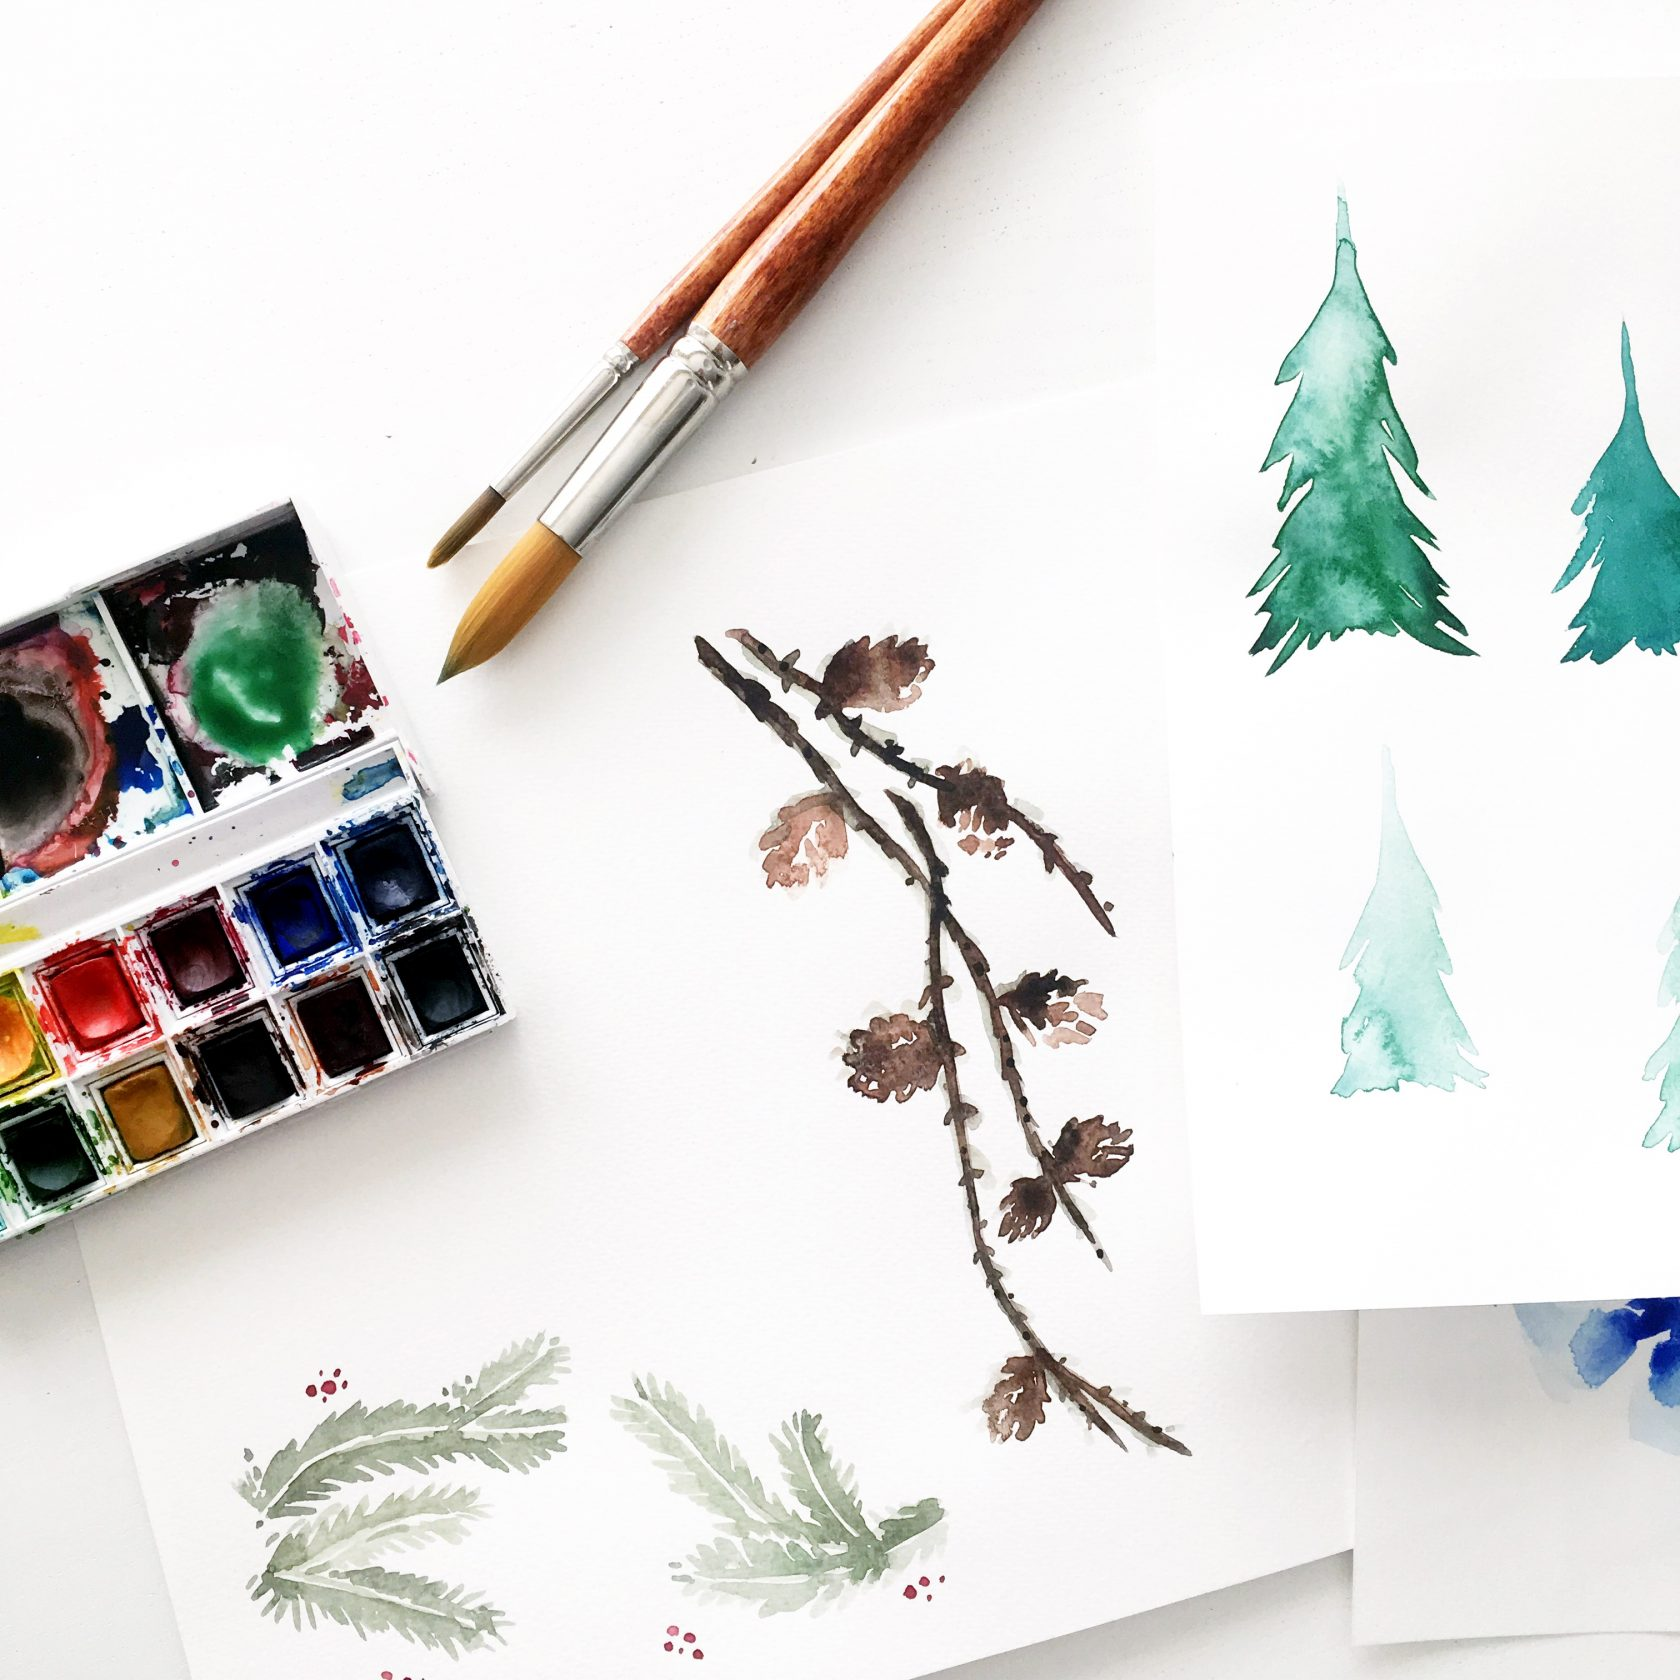 Watercolors in November | Currently by imapapernerd.com